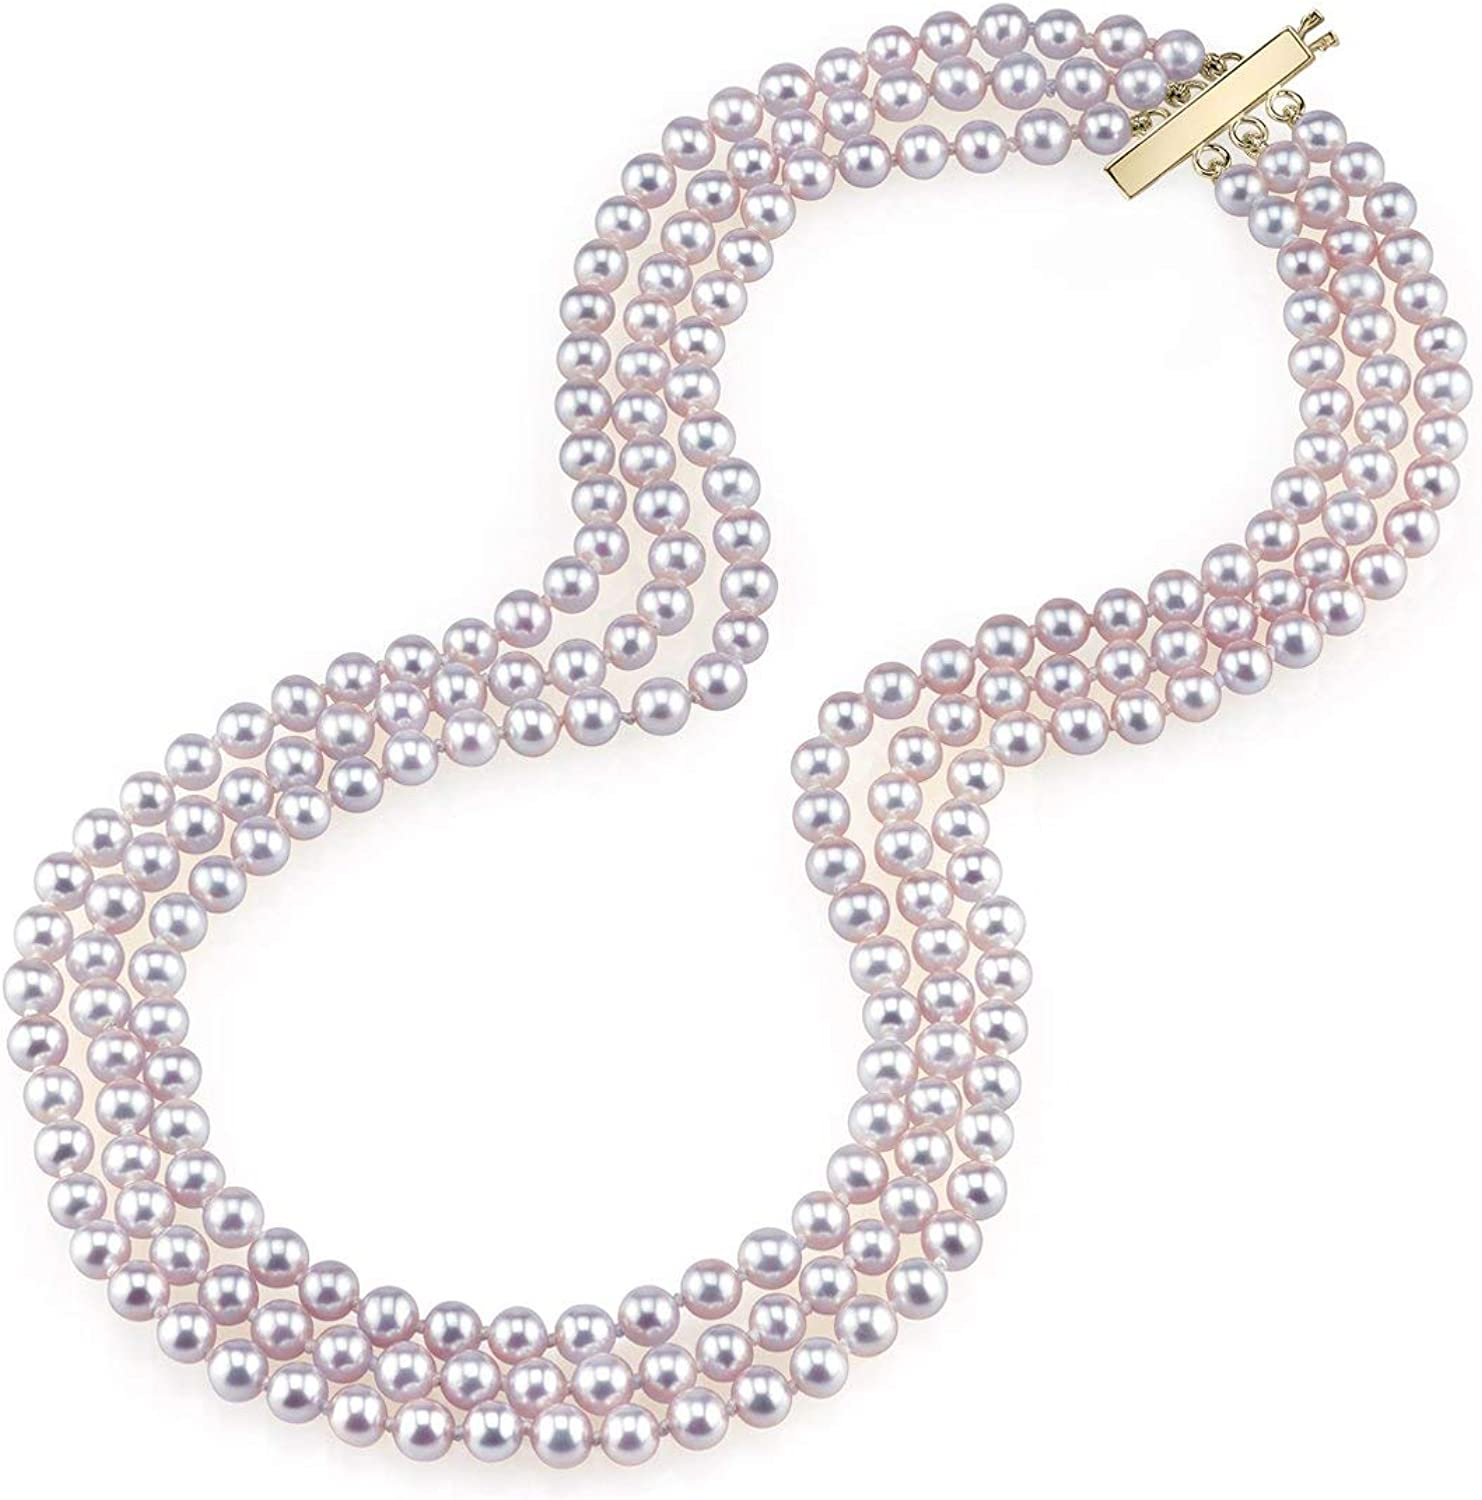 THE PEARL SOURCE 14K Gold AAAA Quality Round Pink Freshwater Cultured Pearl Triple Strand Necklace for Women in 18-20